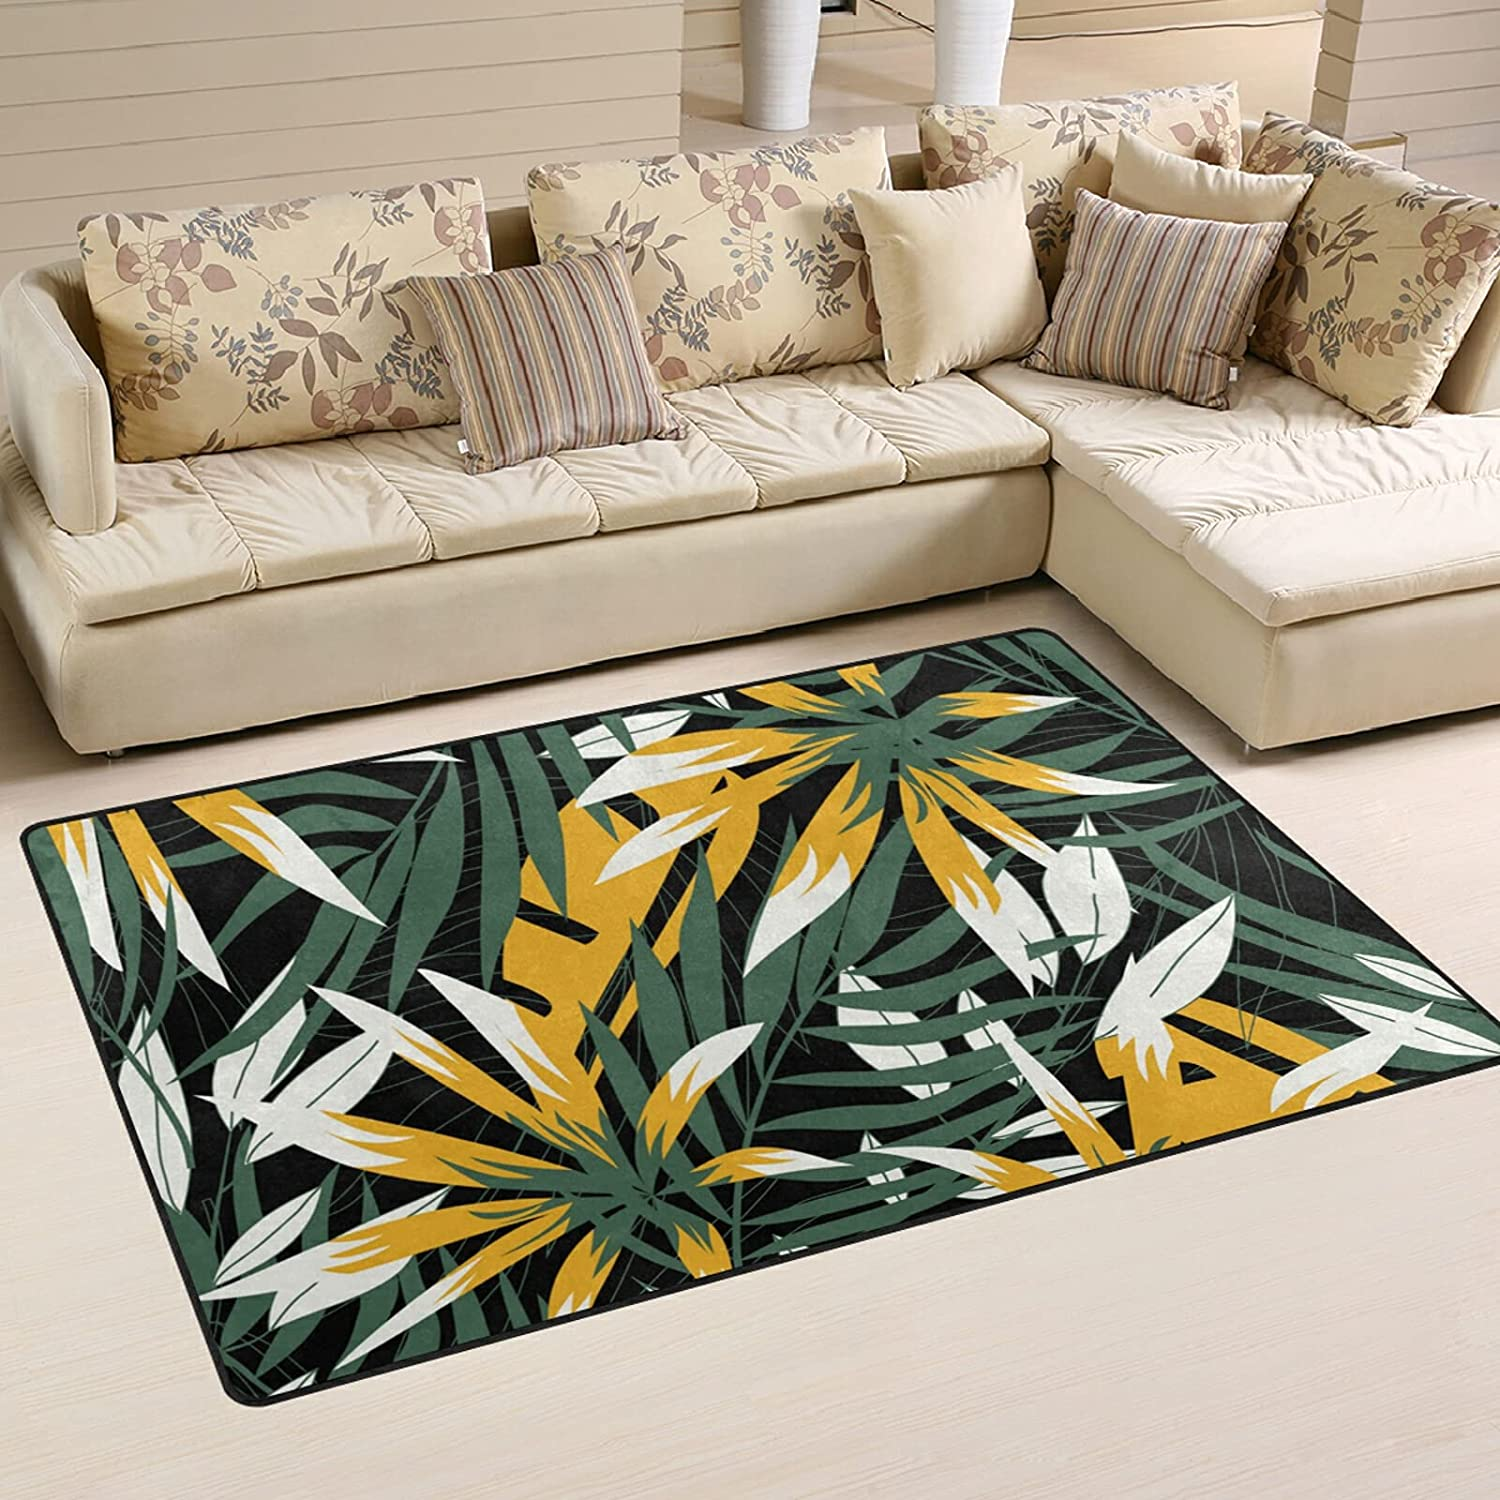 Seattle Mall Abstract Tropical Leaves Max 48% OFF Large Soft Ru Nursery Playmat Area Rugs